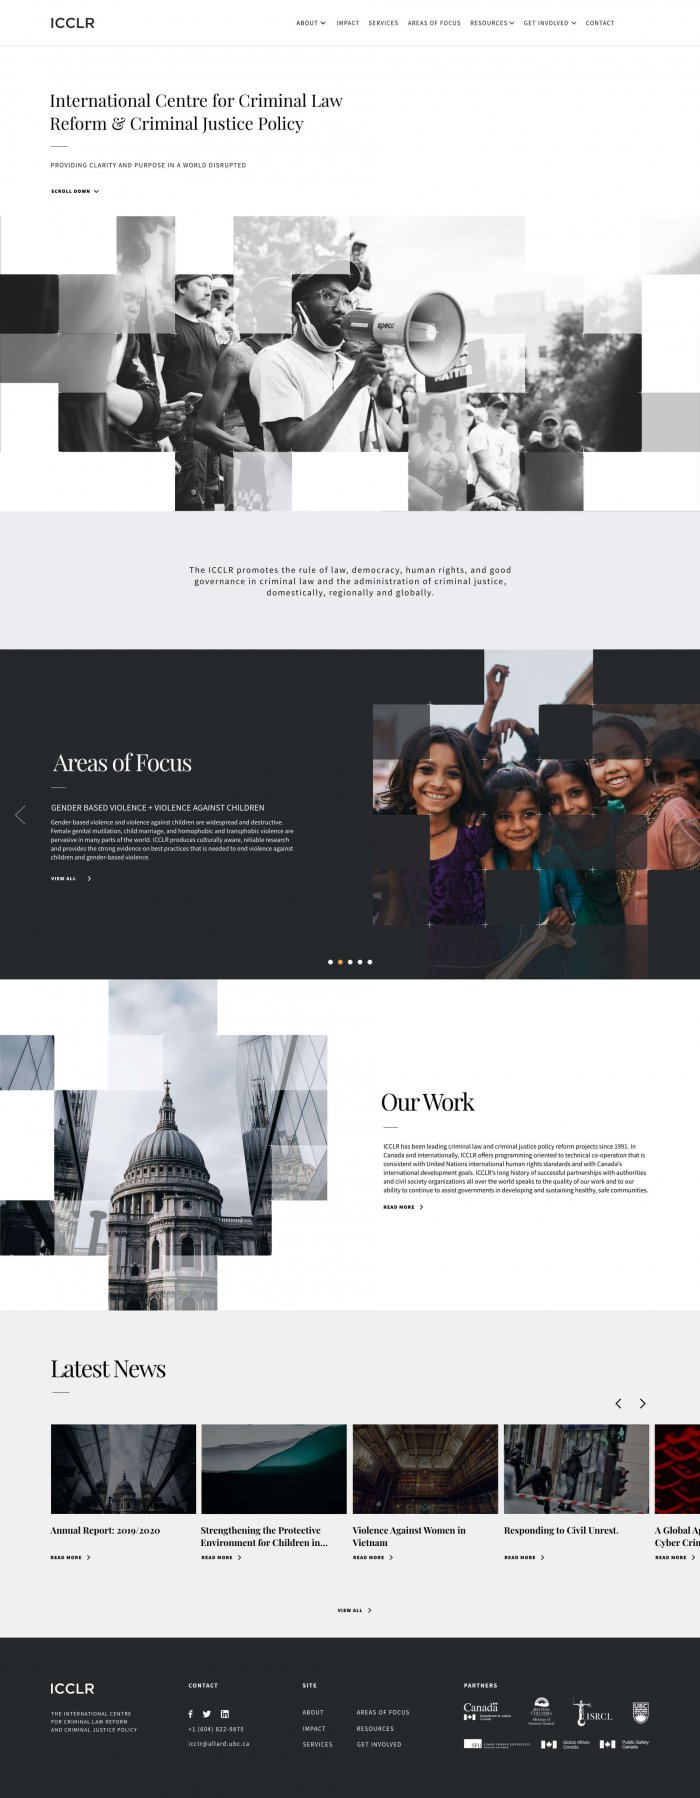 Website design showcase for Vancouver thinktank